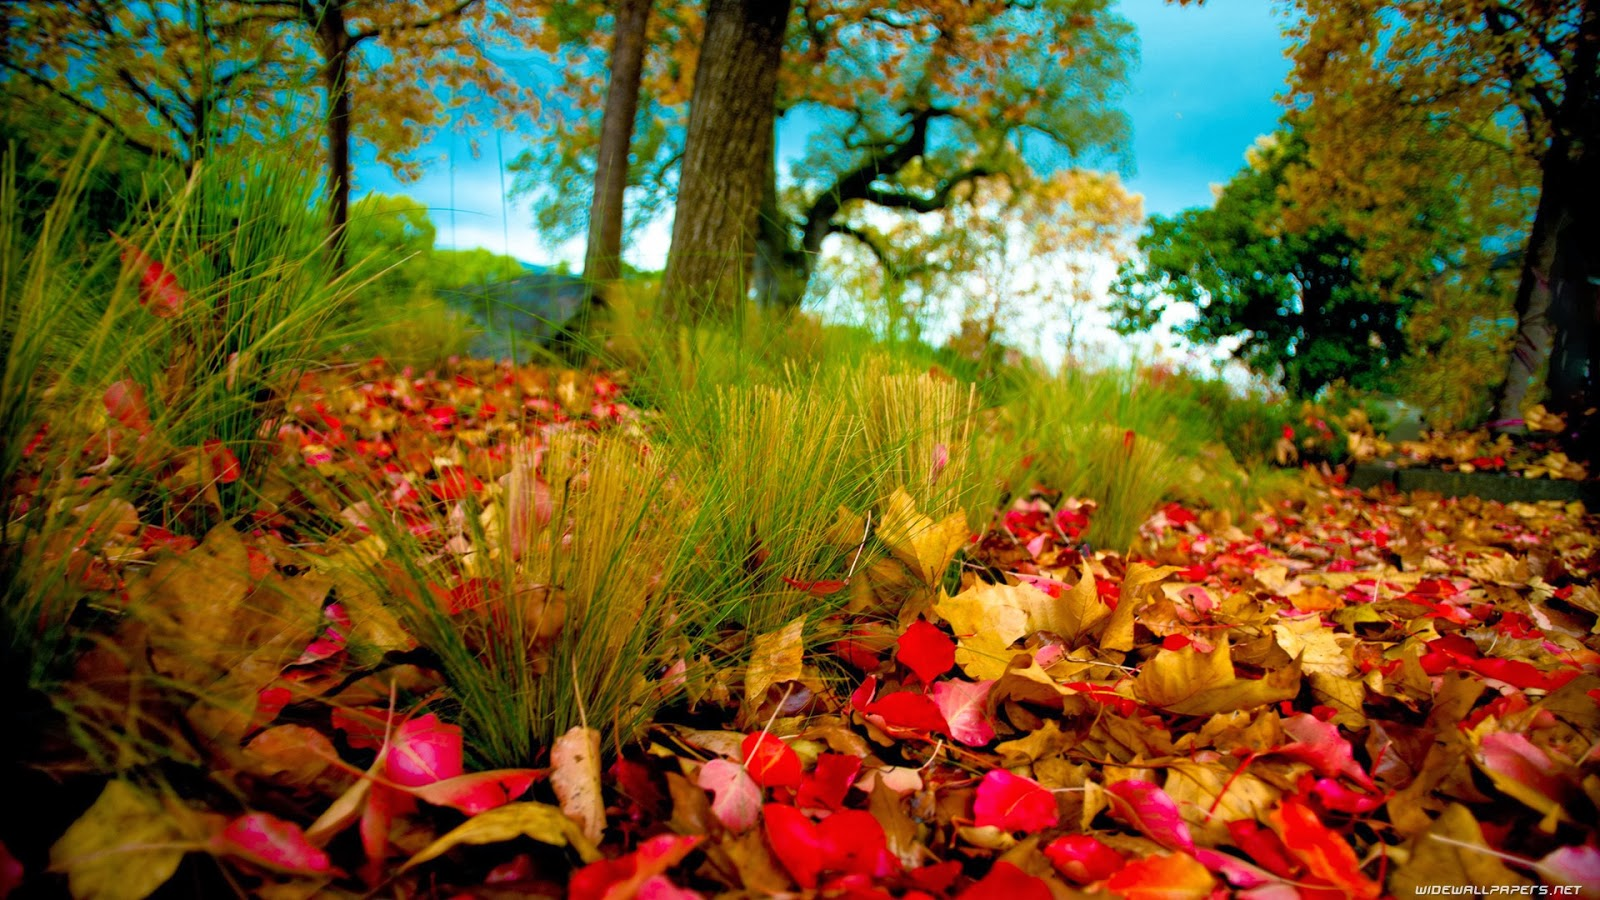 HD Wallpapers 1080p Nature autumn | Nice Pics Gallery